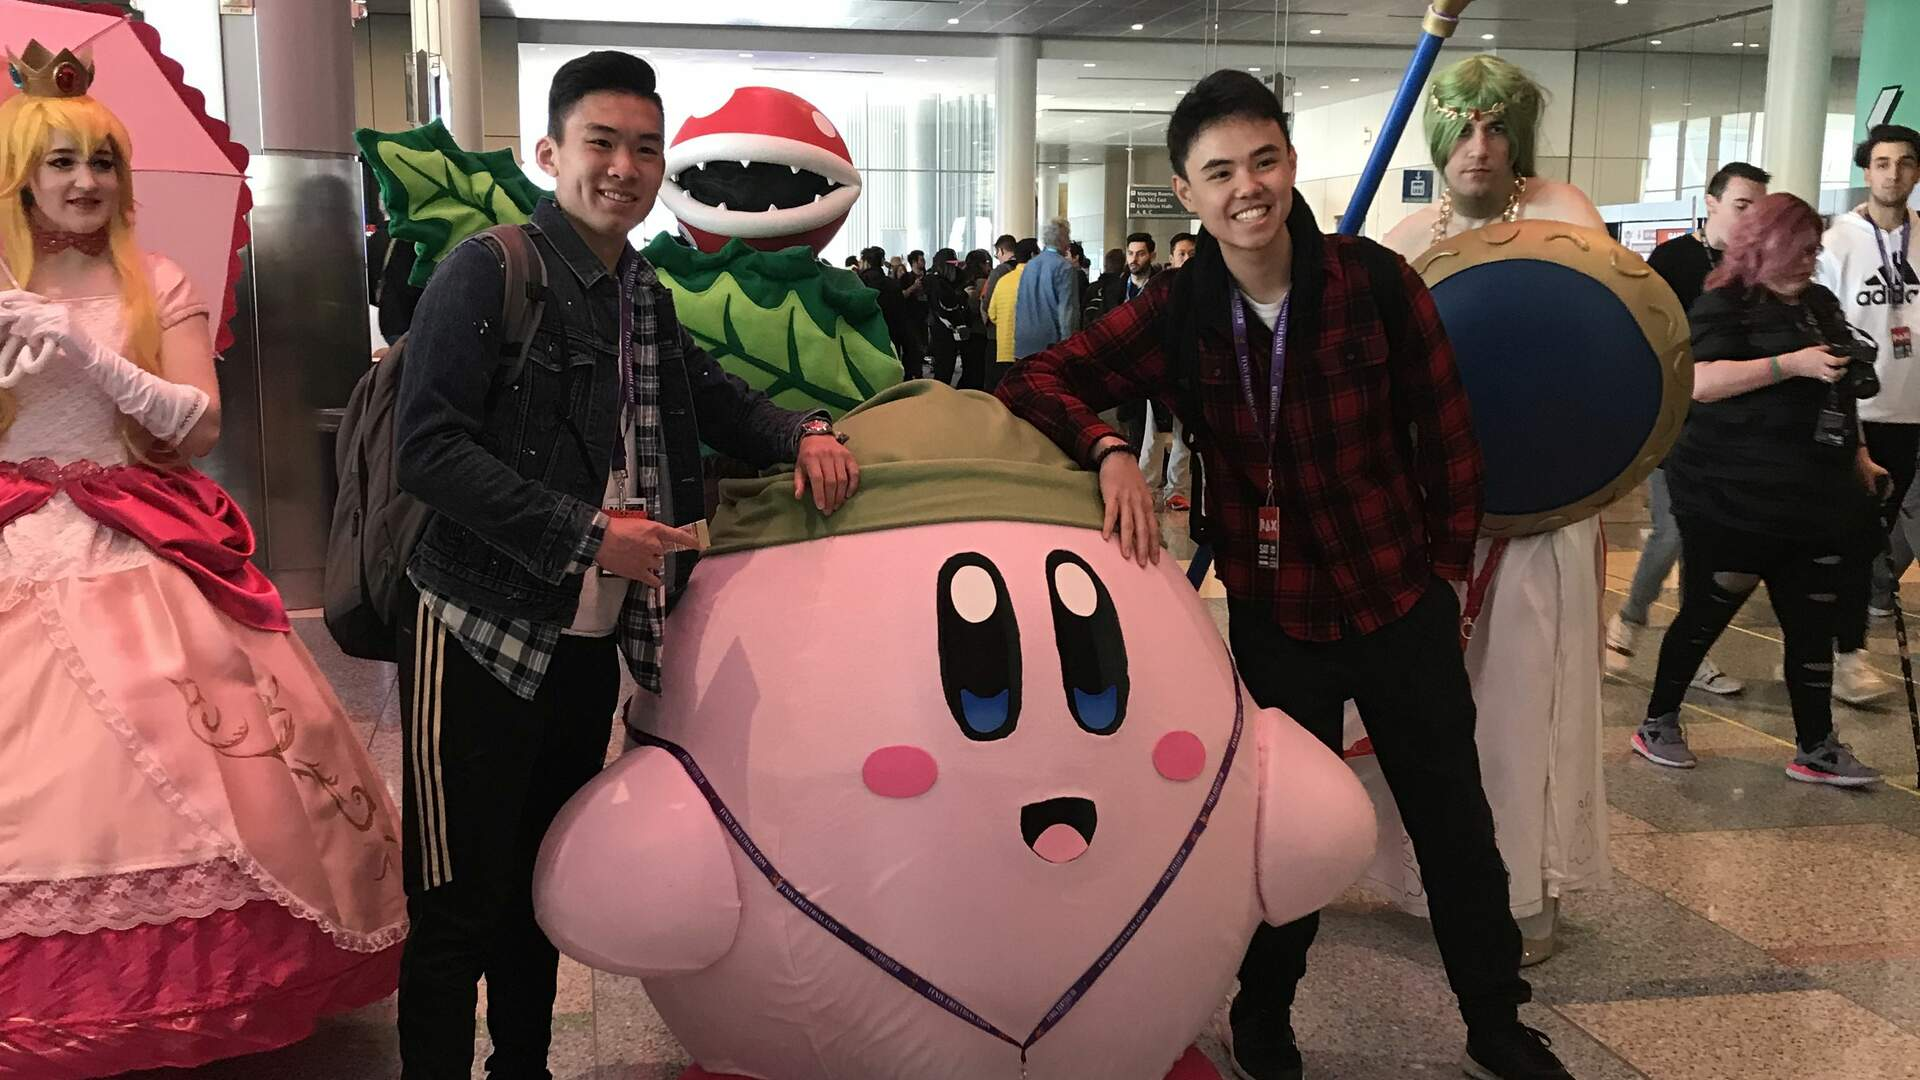 The 10 Best Cosplays We Saw at PAX East 2019